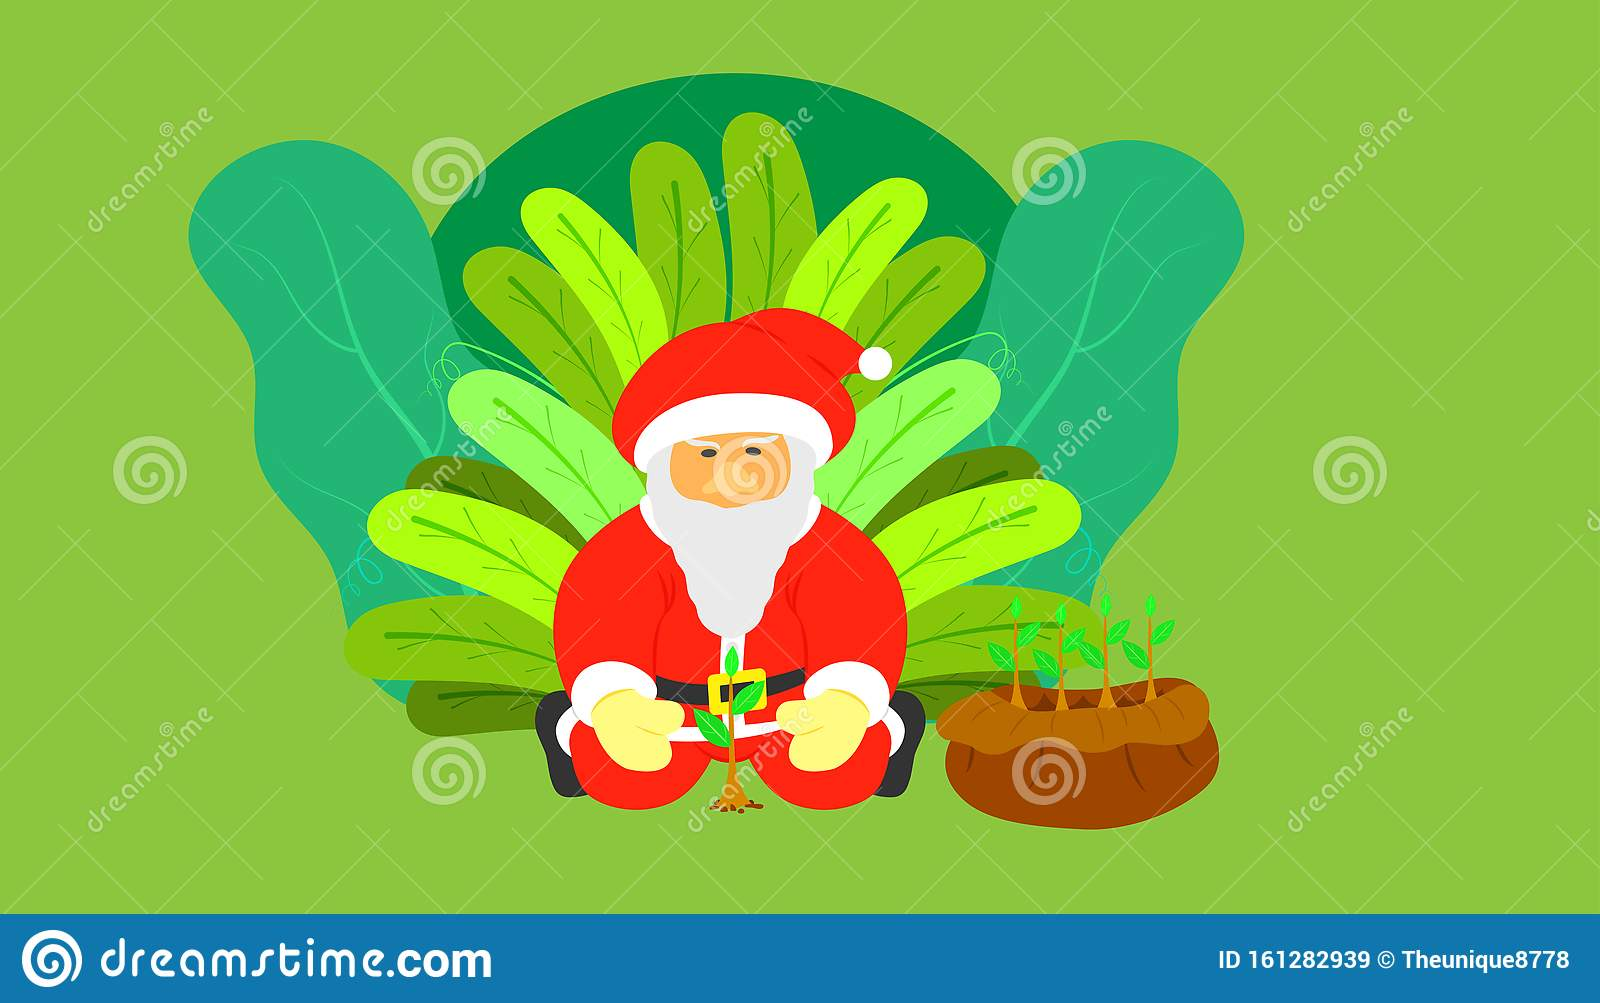 15 046 Cartoon Tree Photos Free Royalty Free Stock Photos From Dreamstime Free cartoon background stock video footage licensed under creative commons, open source, and more! https www dreamstime com santa claus flat cartoon planing tree giving people gift proteced hot planet merry christmas holiday leaf background image161282939